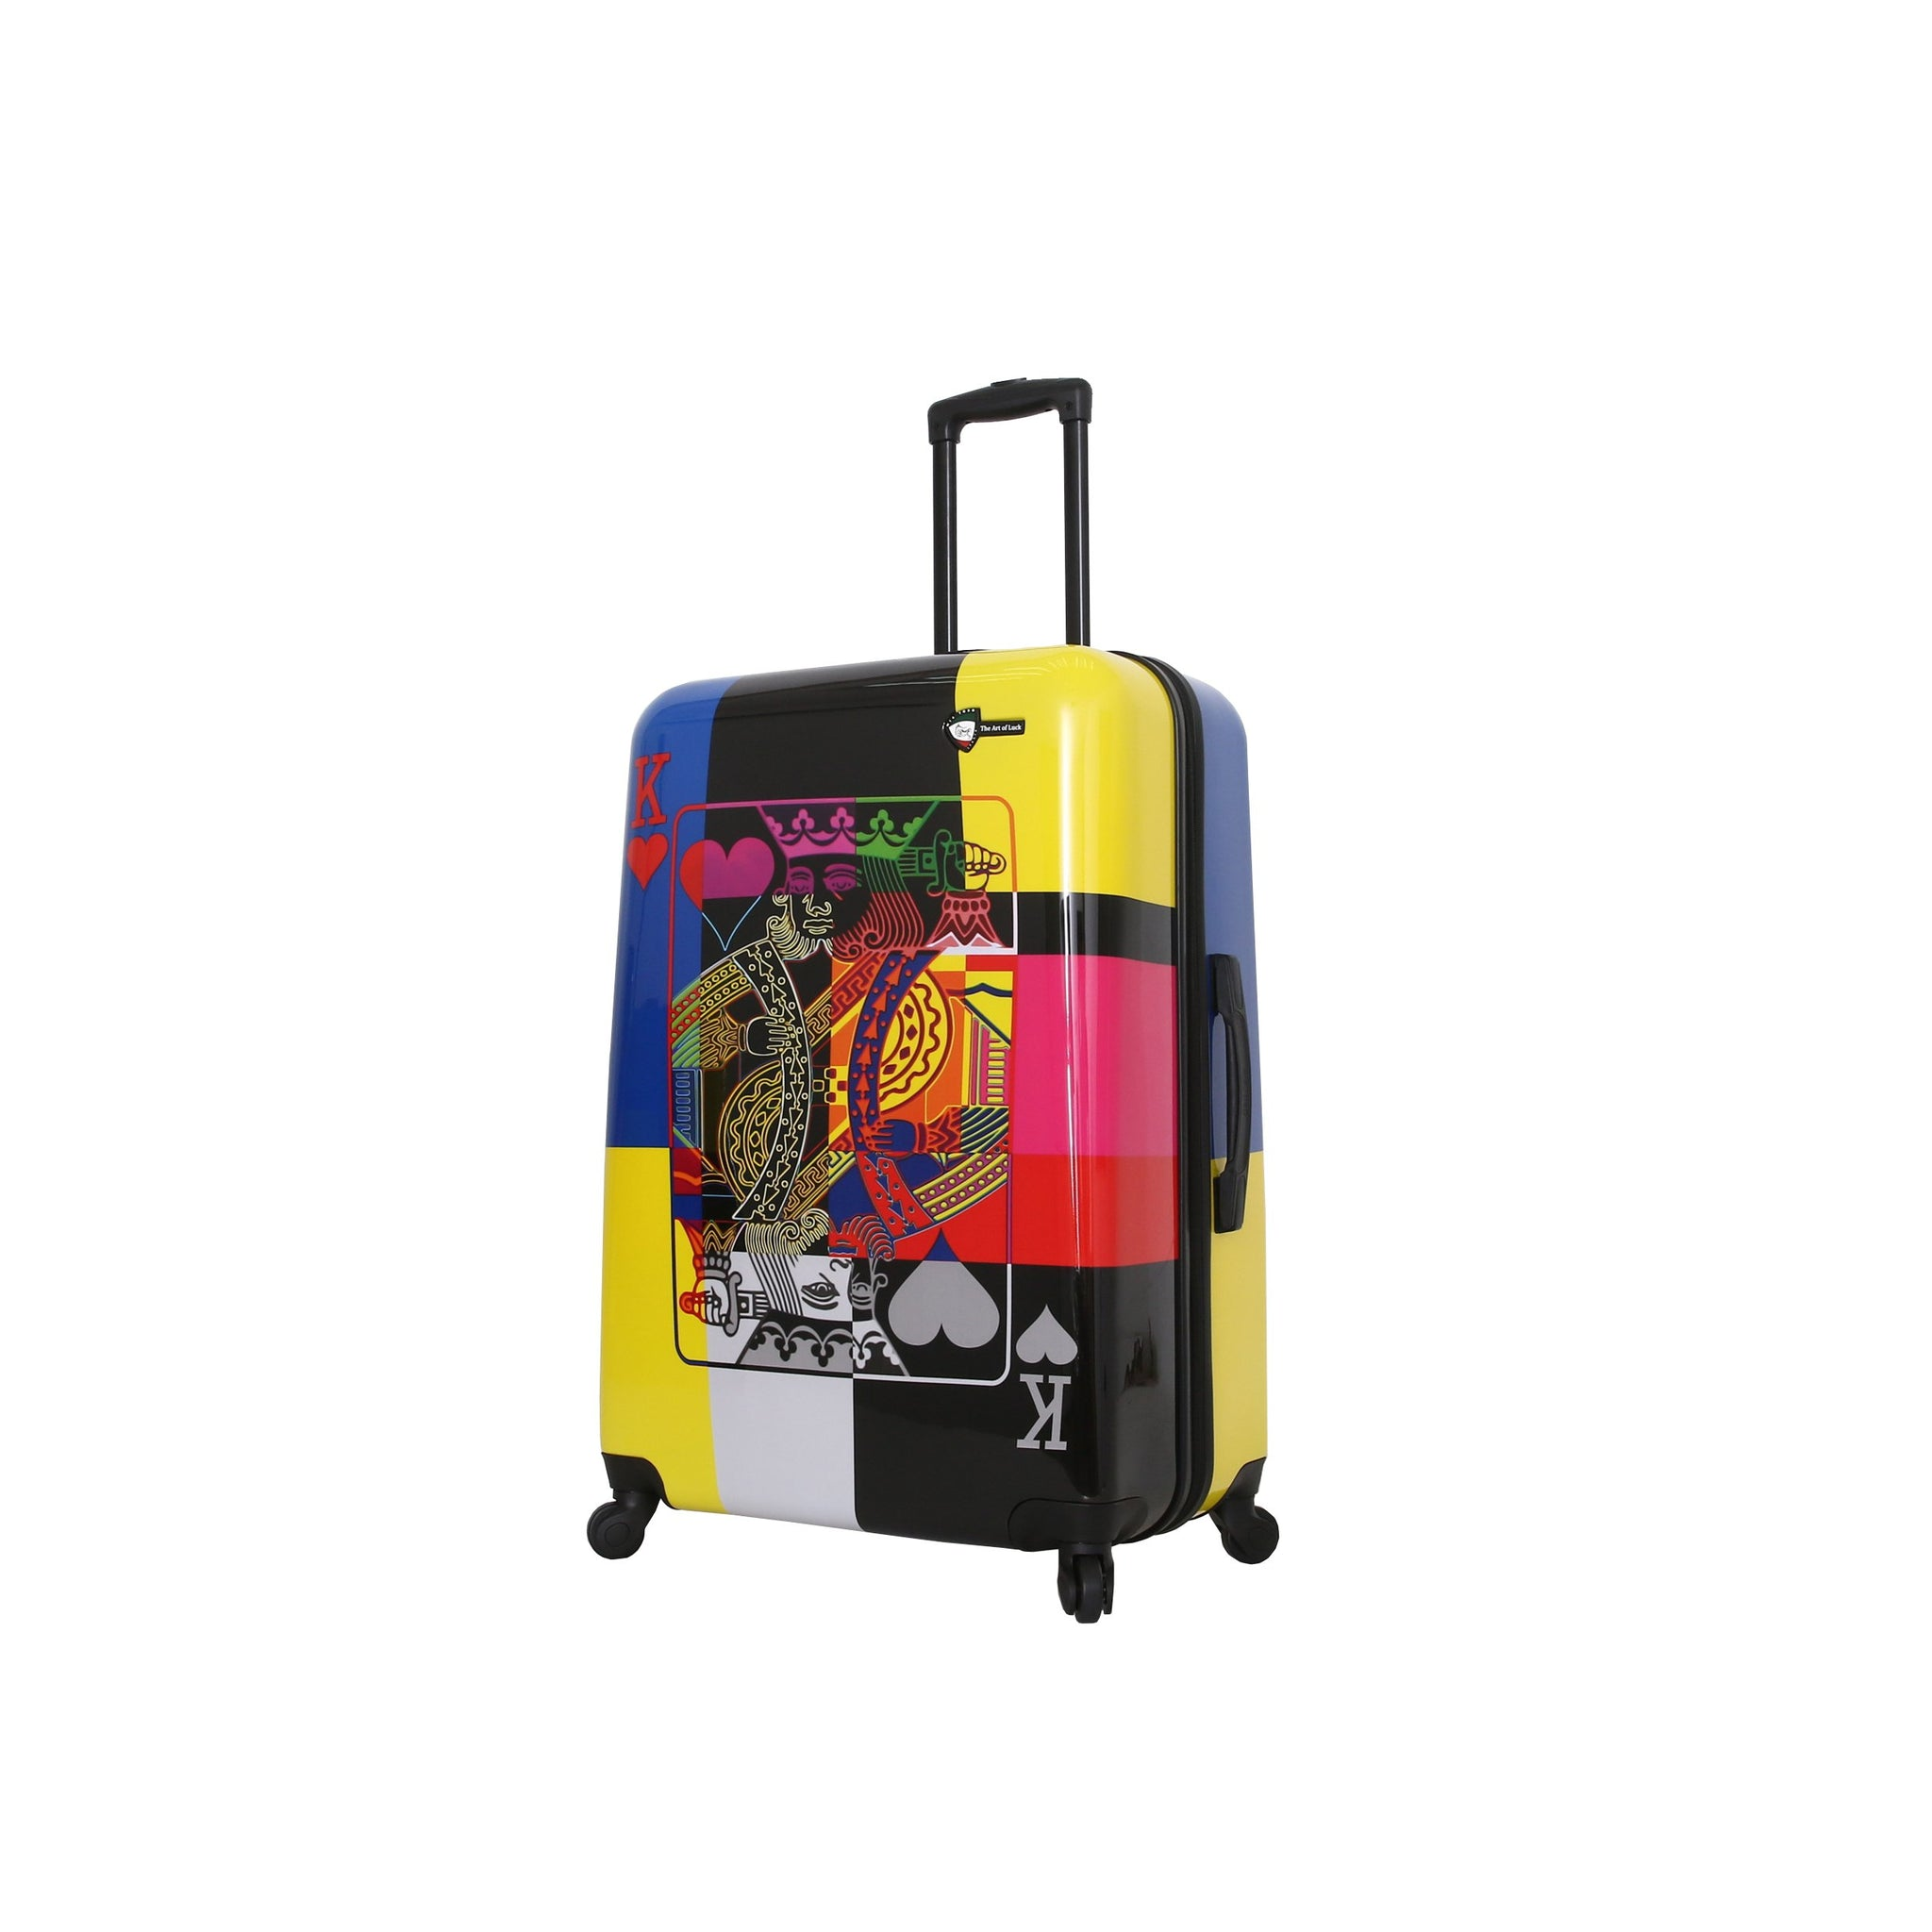 "The Art of Luck 28"" Luggage"